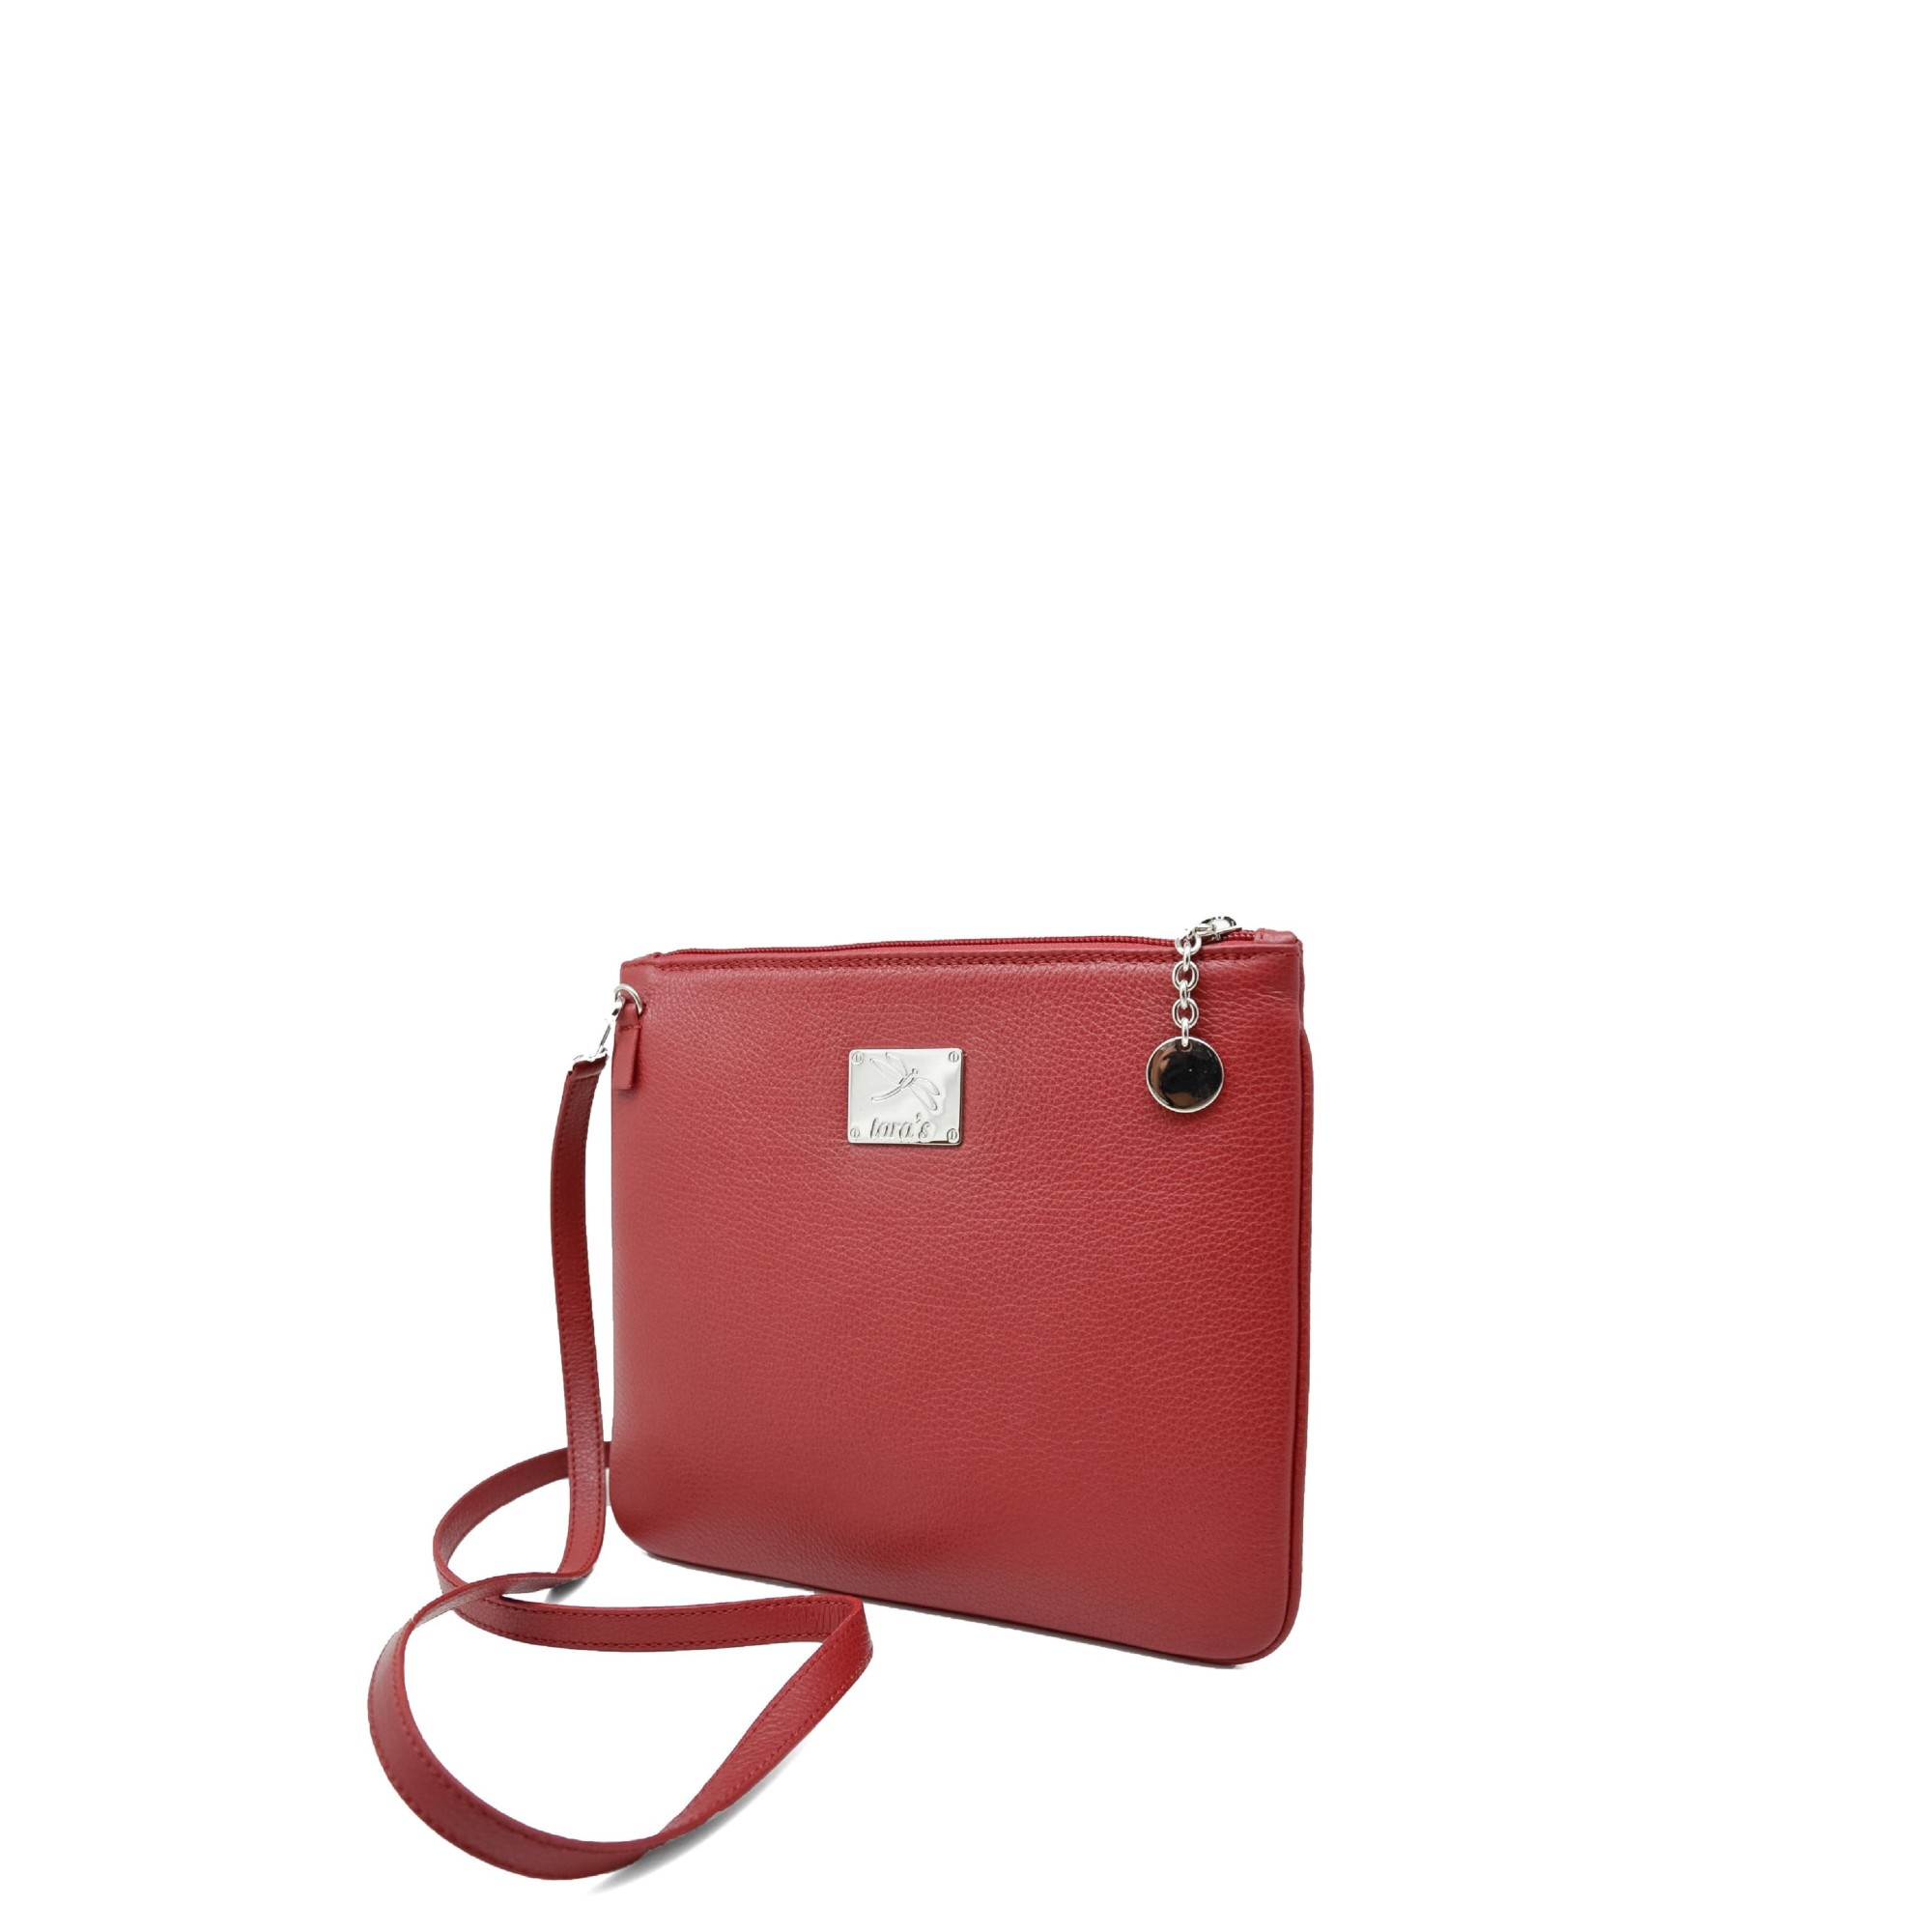 Essential crossbody bag of practical size designed for day to day activities. Made with italian cowhide and high quality fittings, Carefully made in the Tara's Atelier. Top zip closure, long strap drop, zip pocket, soft leather lining